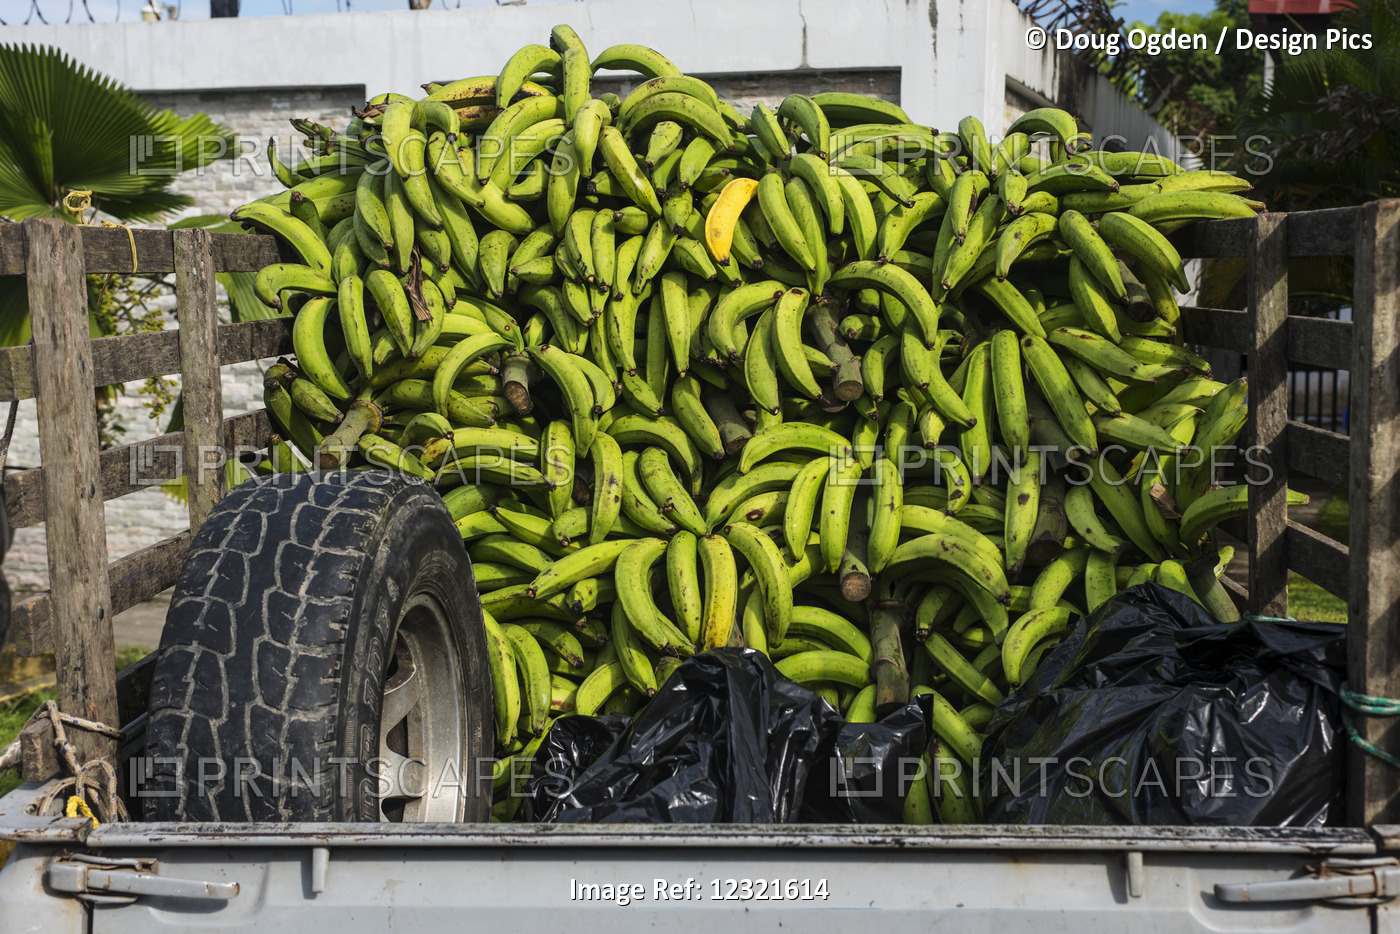 A Load Of Green Bananas And One Yellow One On The Way To Market, The Bananas ...